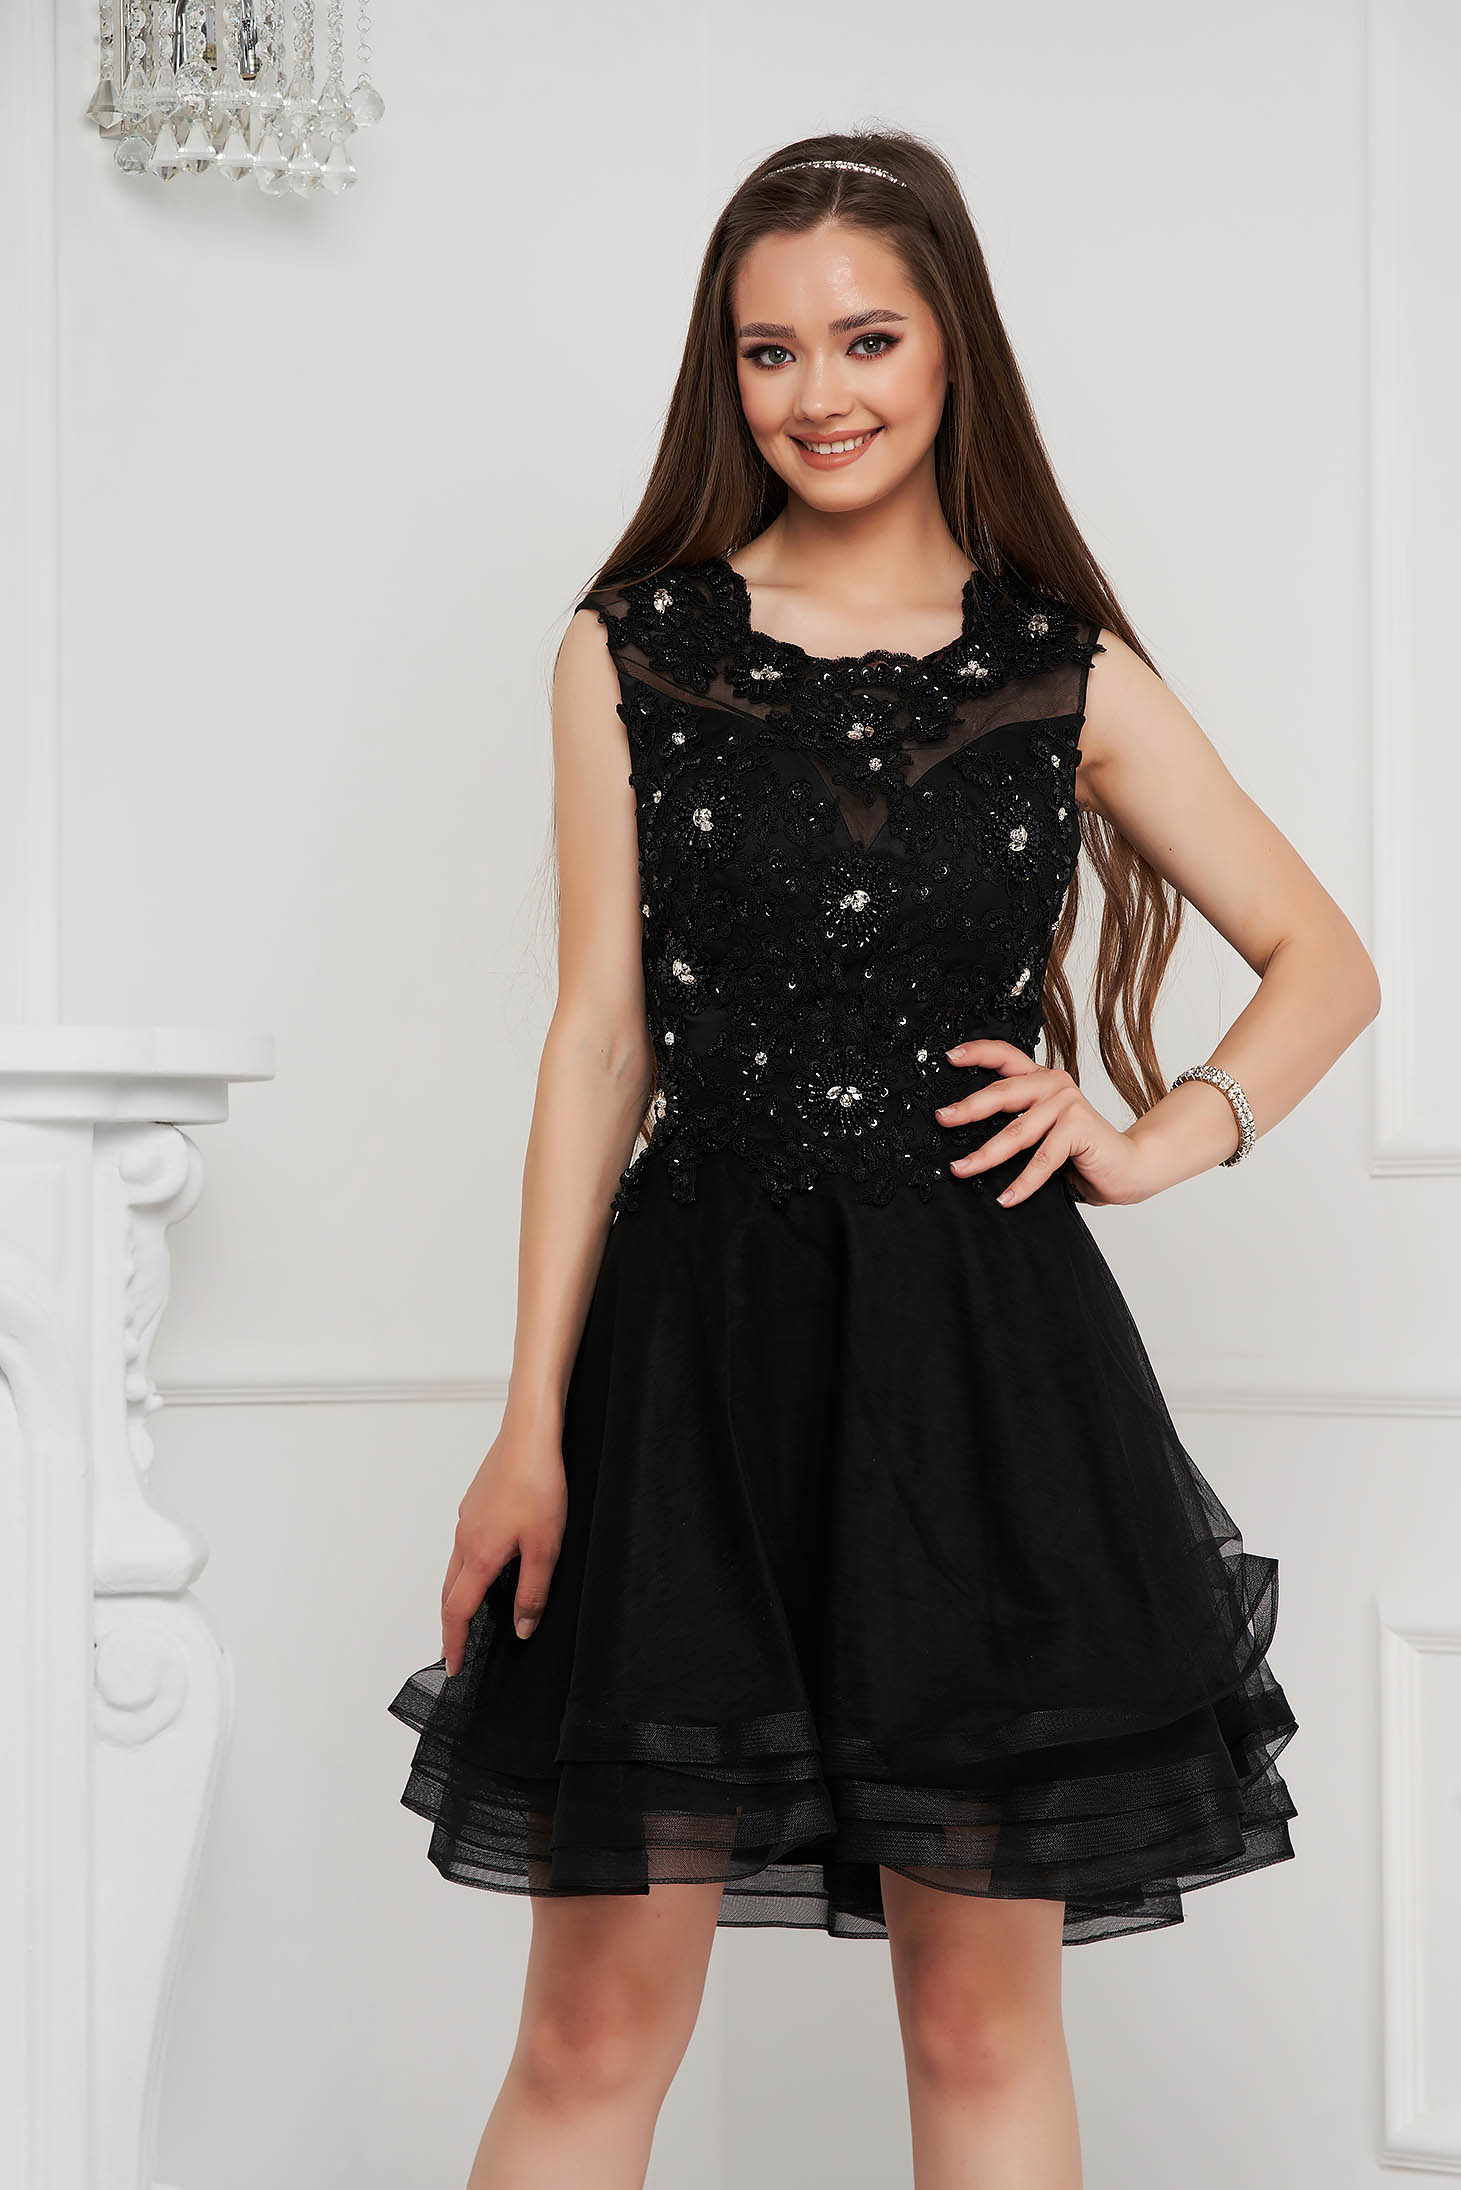 Black dress short cut cloche from tulle with sequin embellished details